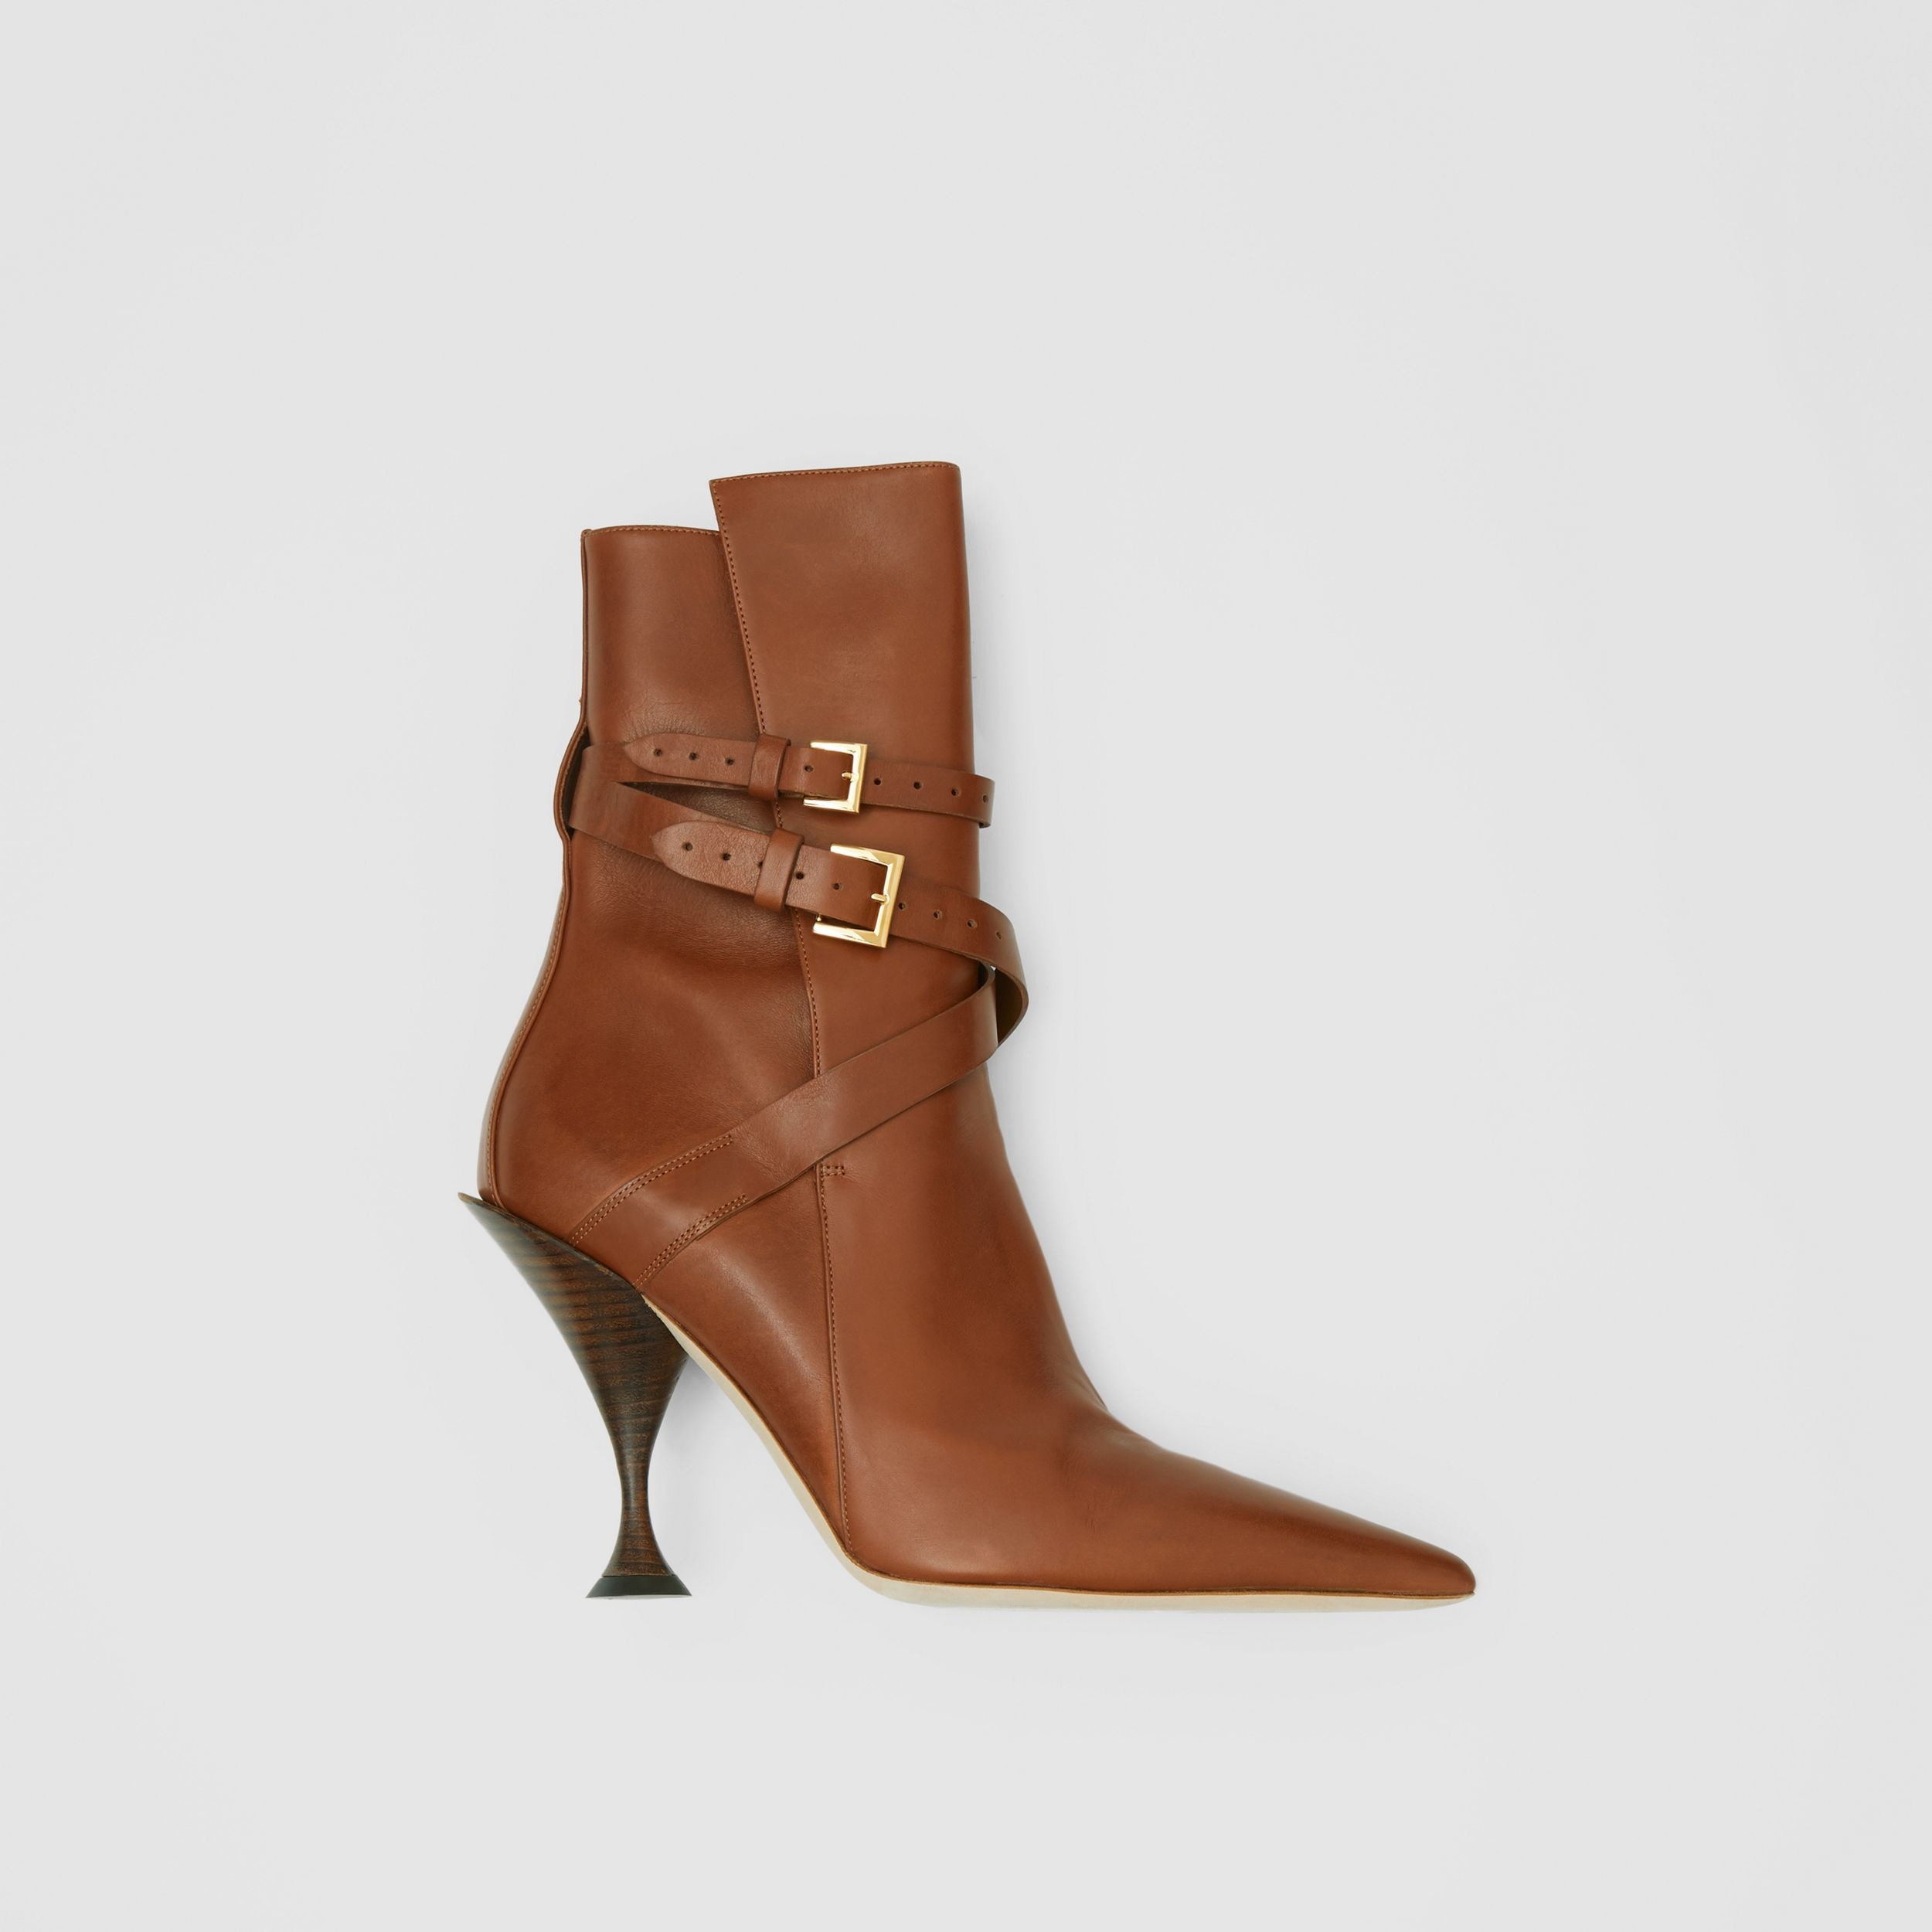 Strap Detail Leather Ankle Boots in Tan - Women | Burberry - 1